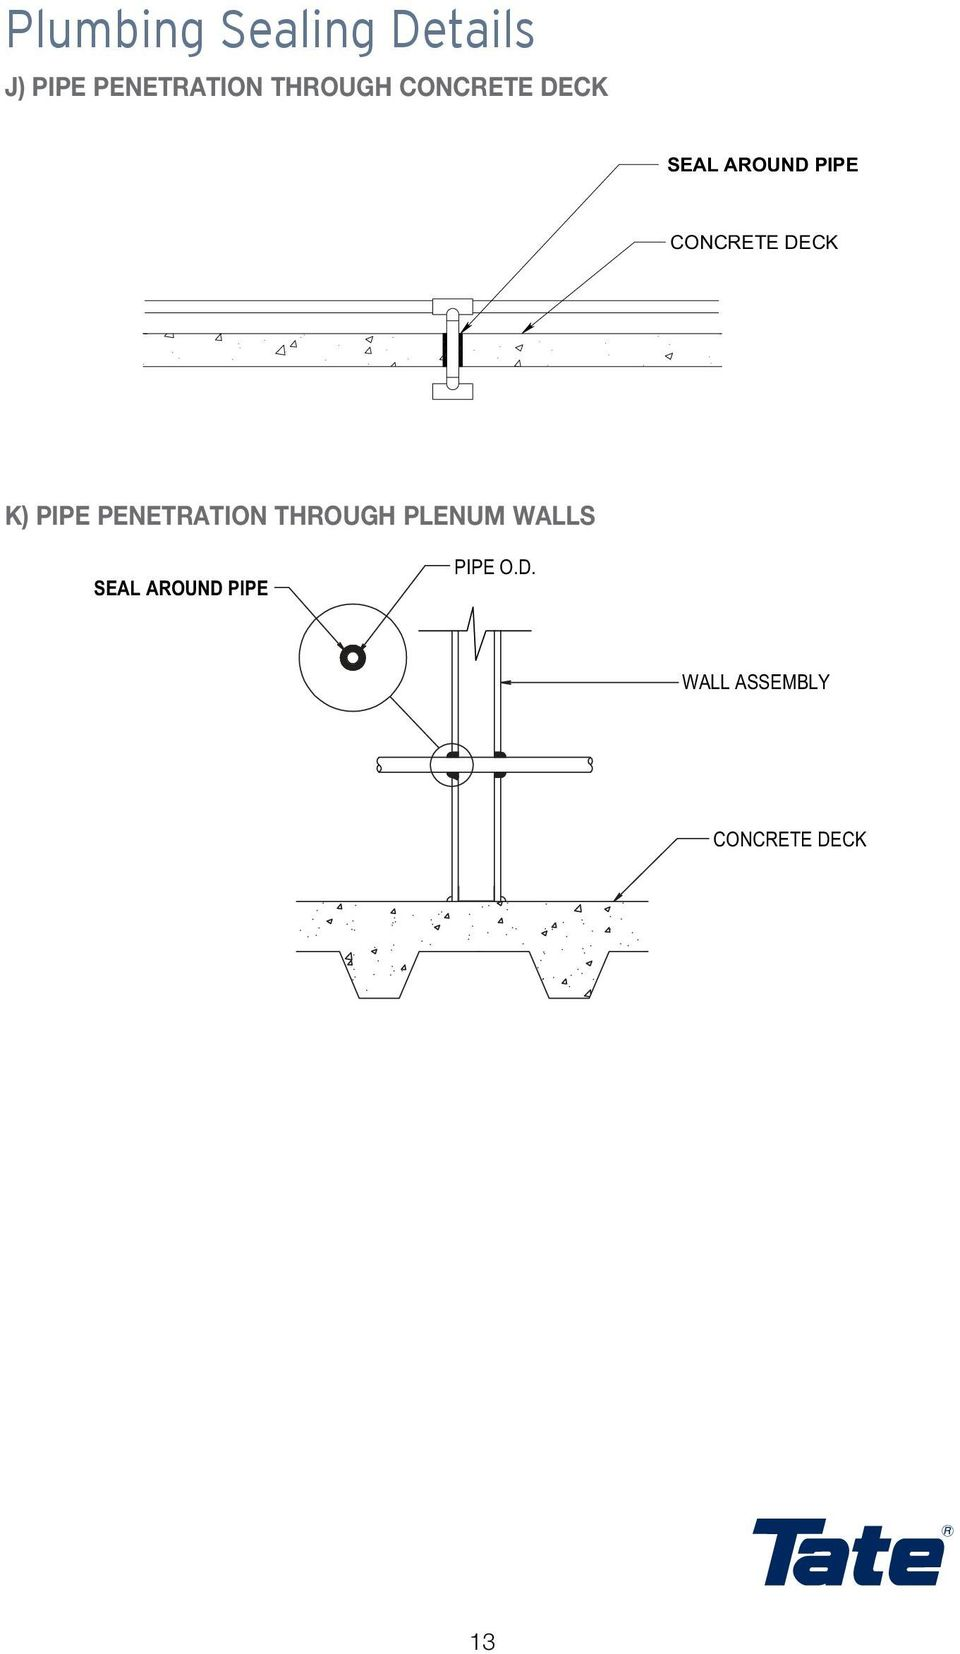 THROUGH K) PIPE PENETRATION THROUGH PLENUM